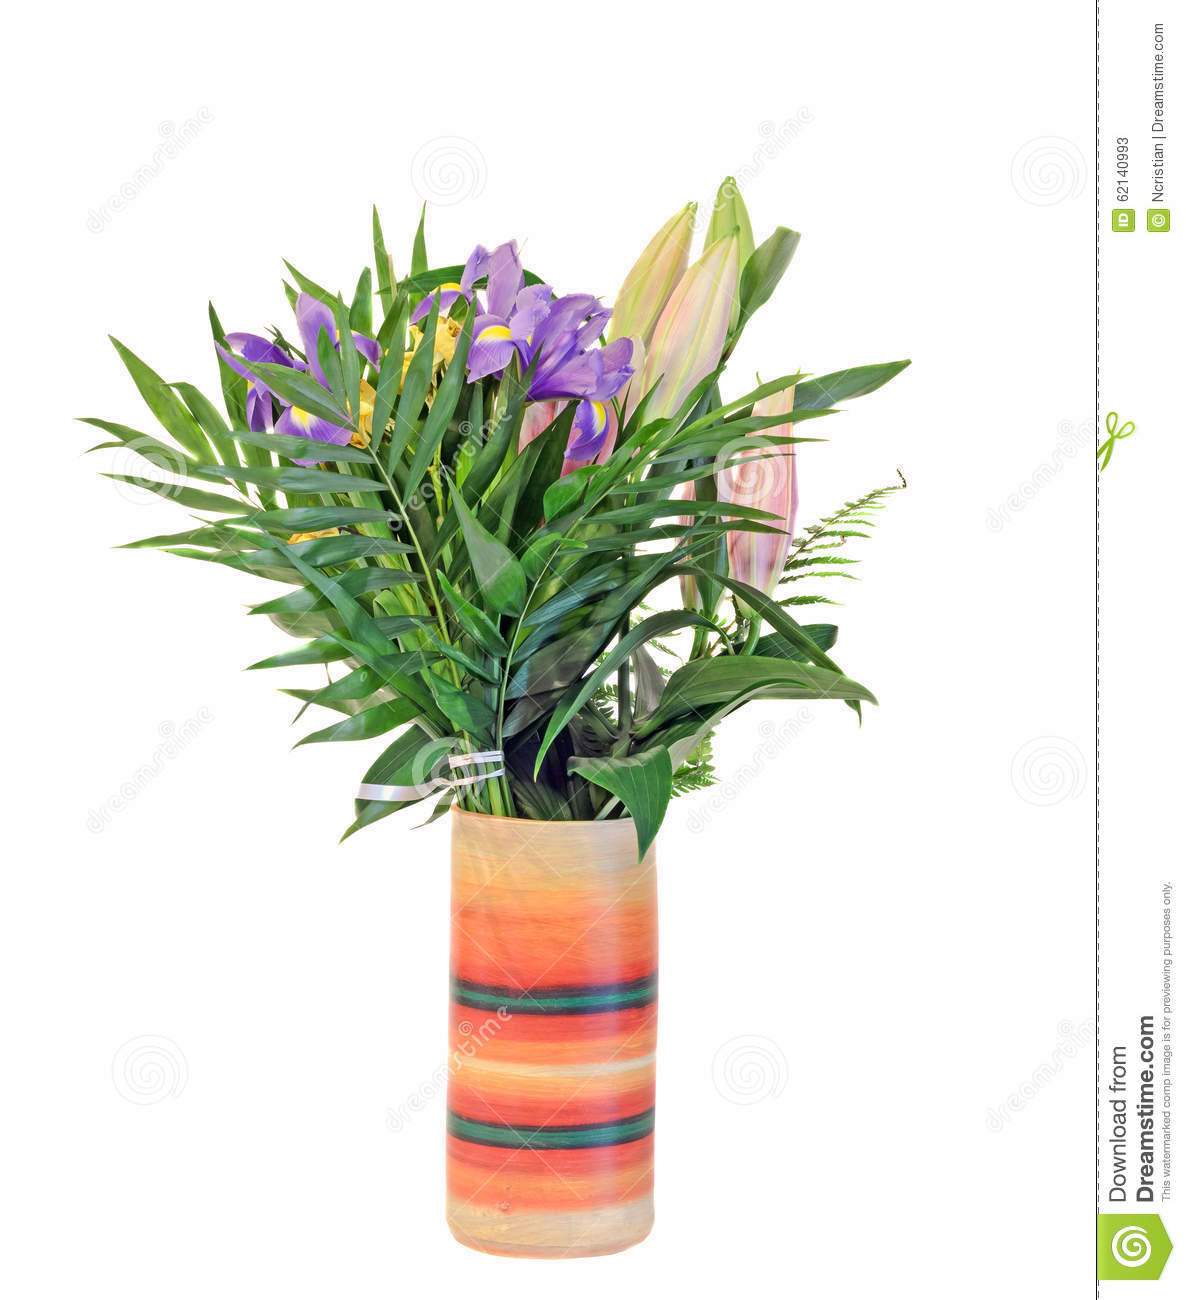 Bouquet Of Mauve Iris Flowers With Lilies Buds In A Vibrant Colored